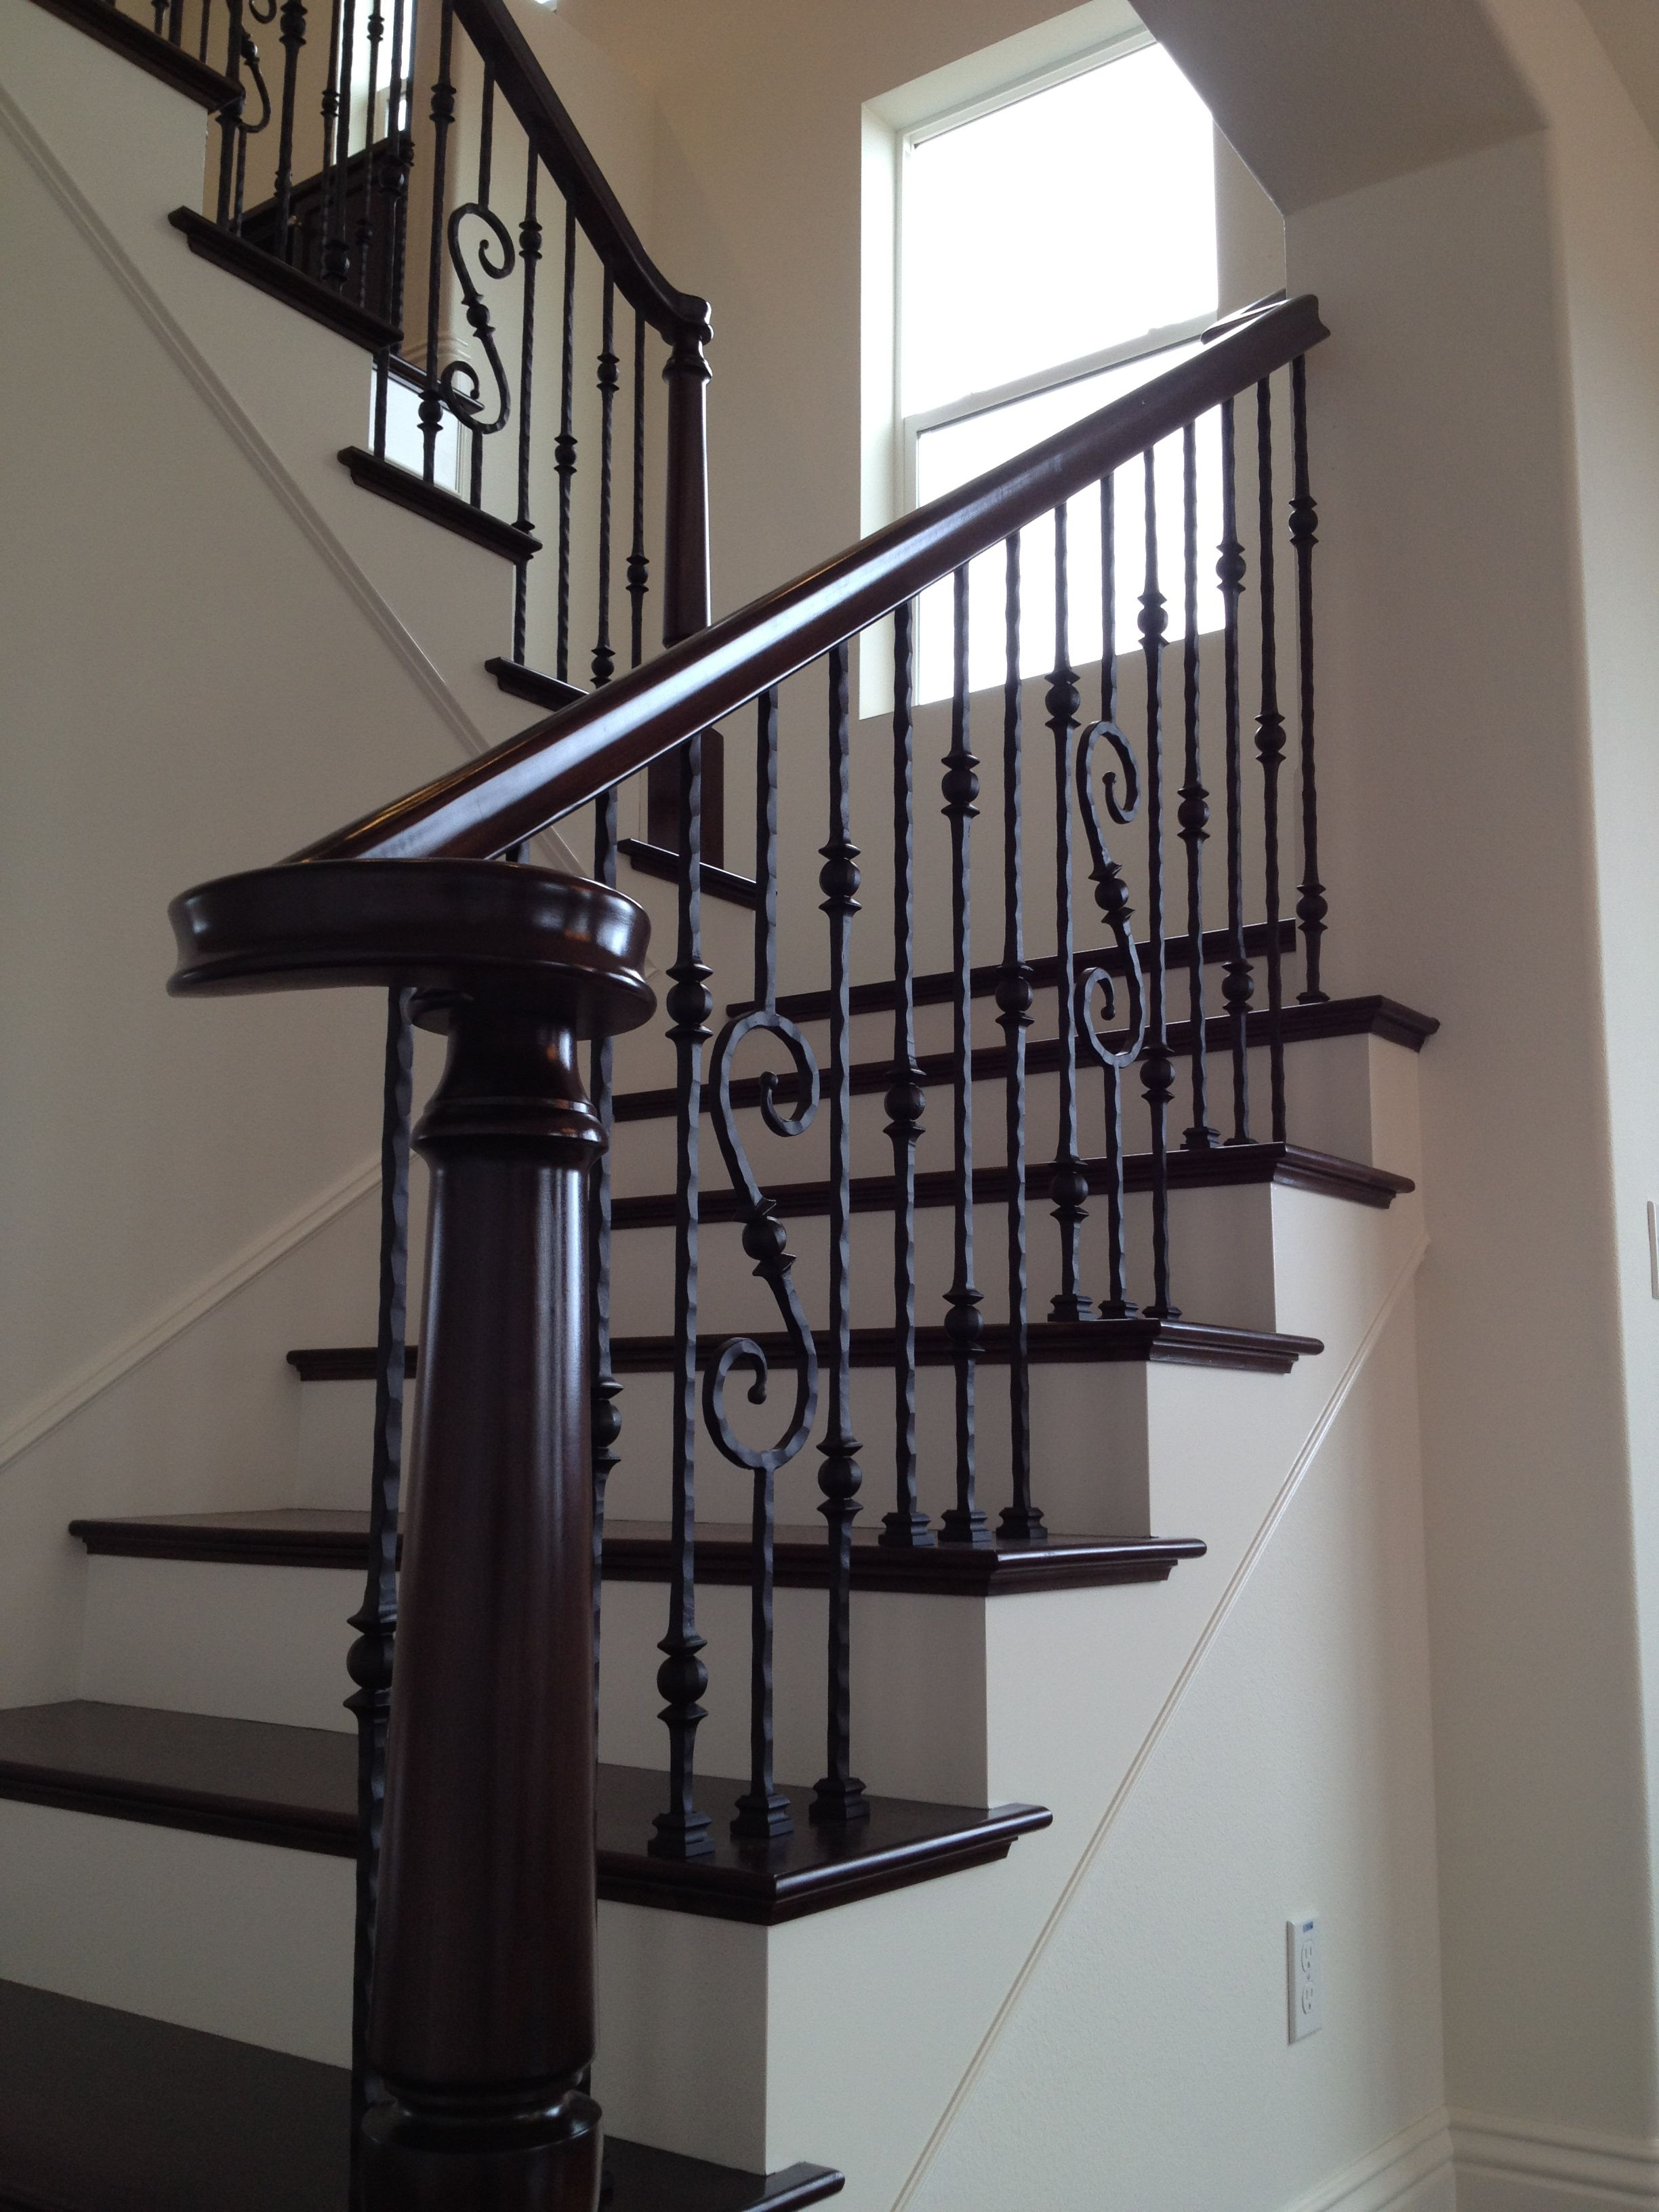 Dark Floors Wrought Iron Stairs Iron Stair Railing Wrought Iron Stairs Stair Railing Design